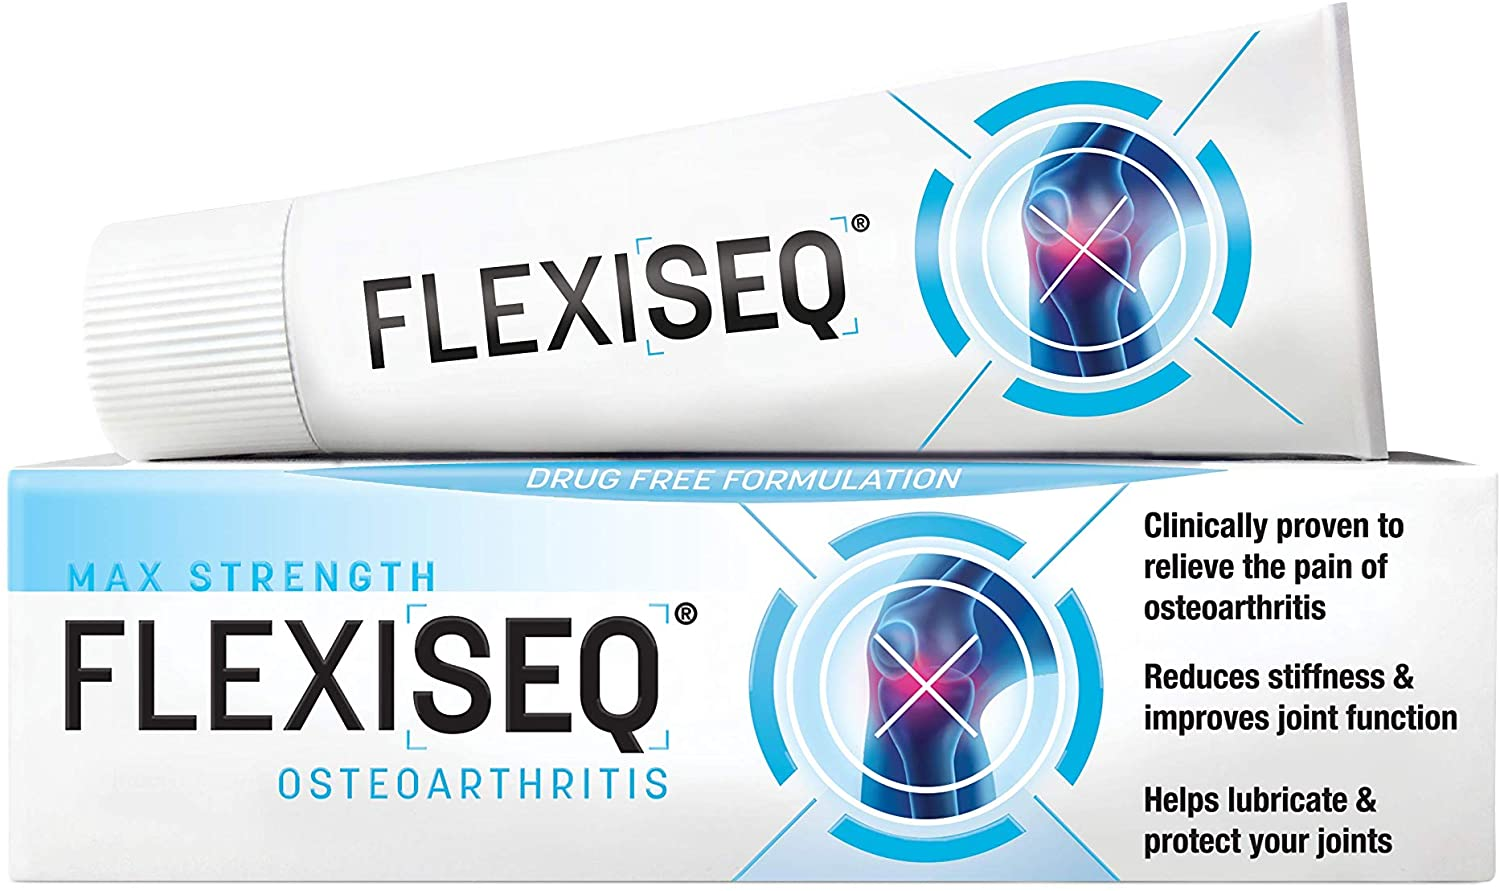 Flexiseq Osteoarthritis Gel Max Strength 30g, Osteoarthritis Joint Pain Relief Gel, Drug-Free Treatment for Joints Including Knees, Hands, Feet & Hip